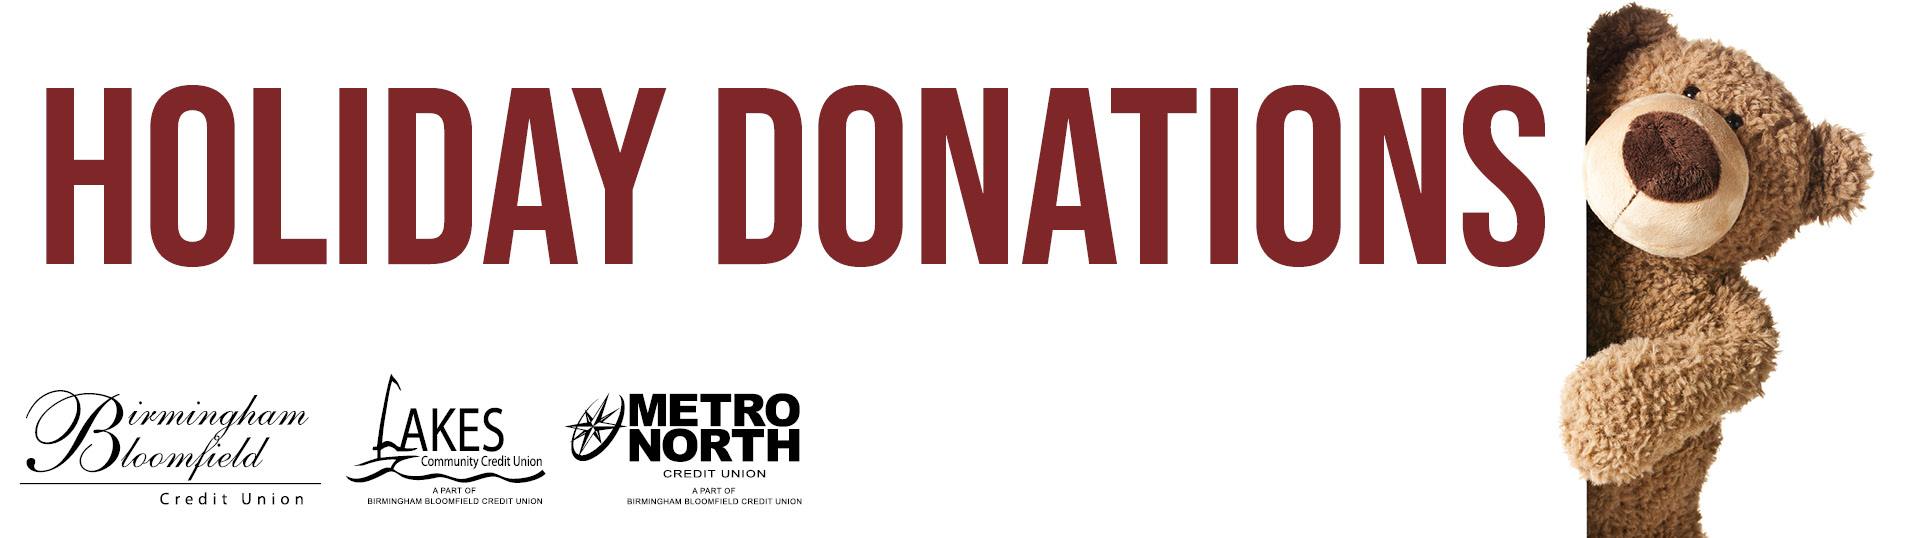 holiday donations image